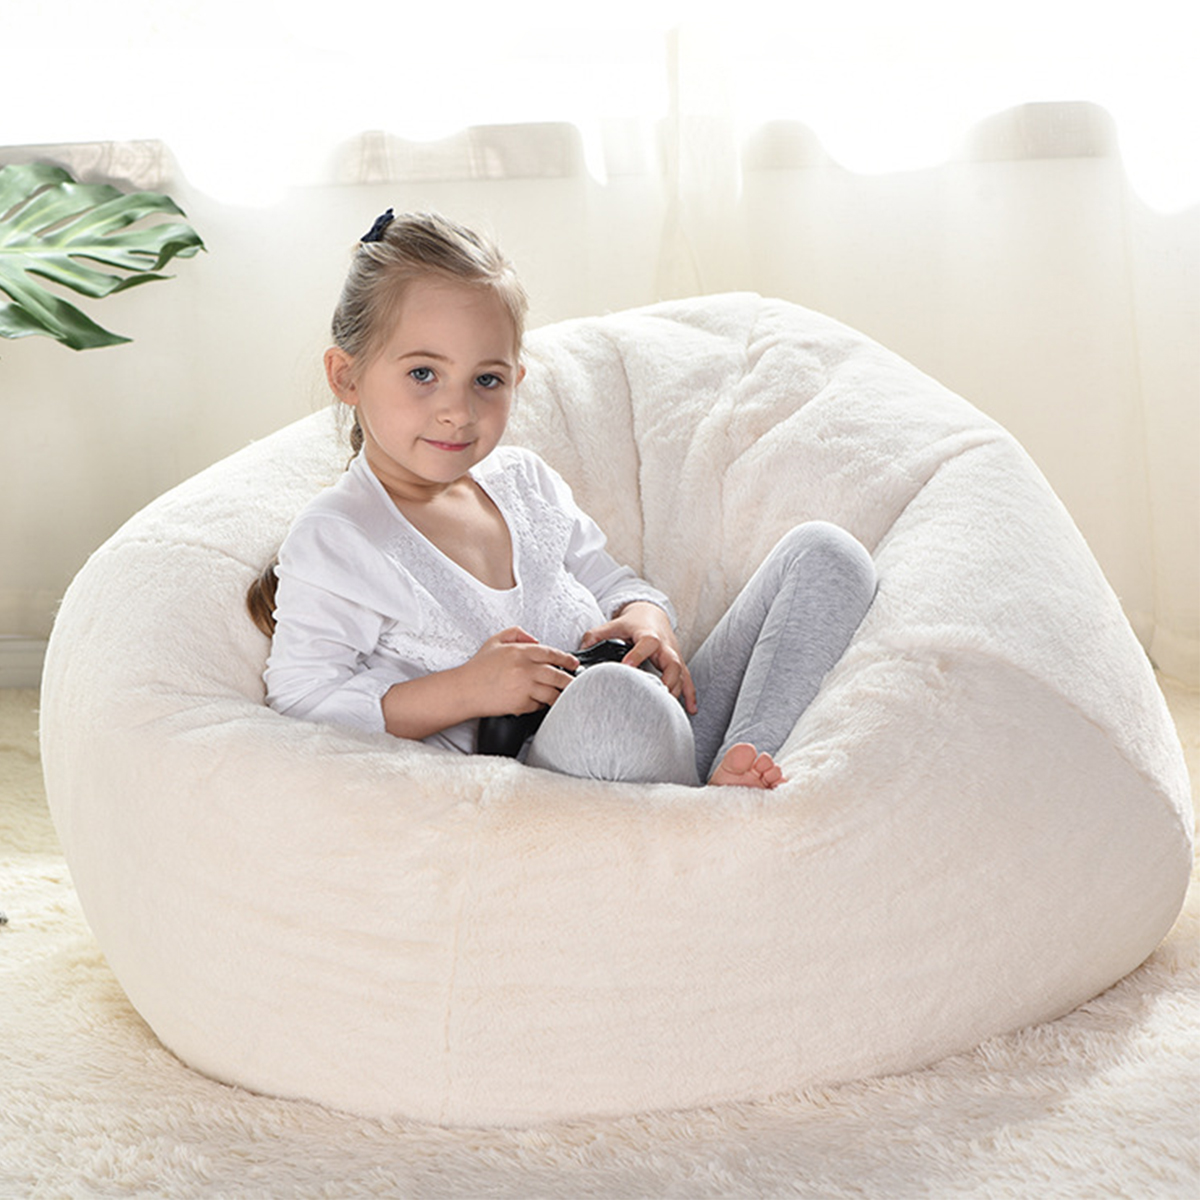 XL Large Bean Bag Chair Cover Indoor Lazy Manmade Rabbit ...